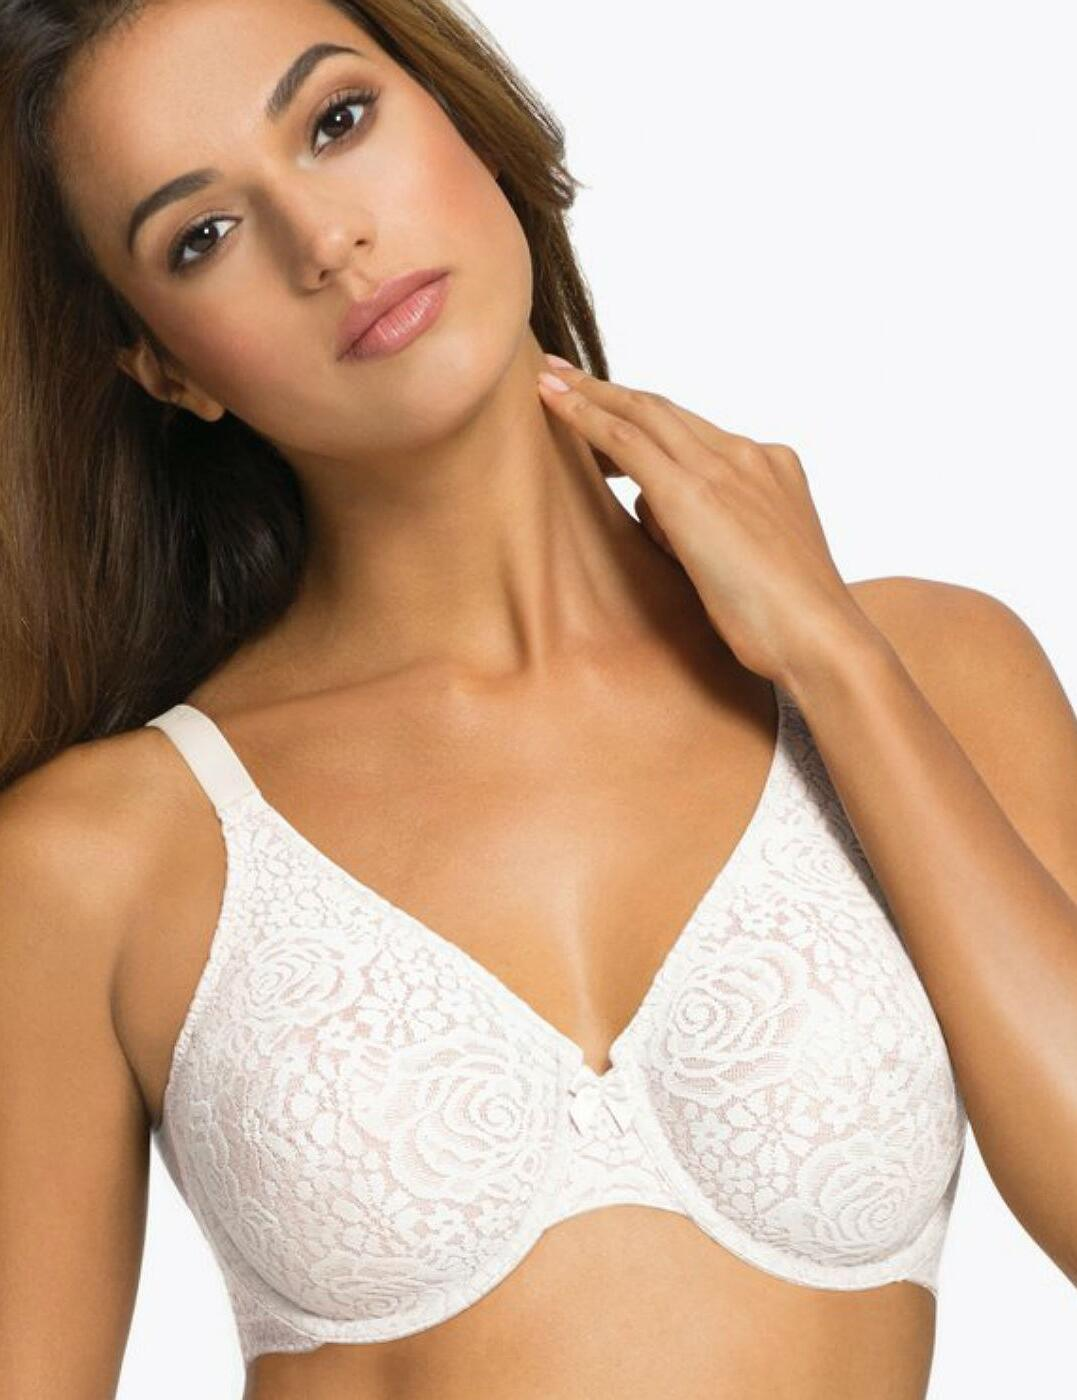 851205 Wacoal Halo Lace Underwired Bra  - 851205 Ivory